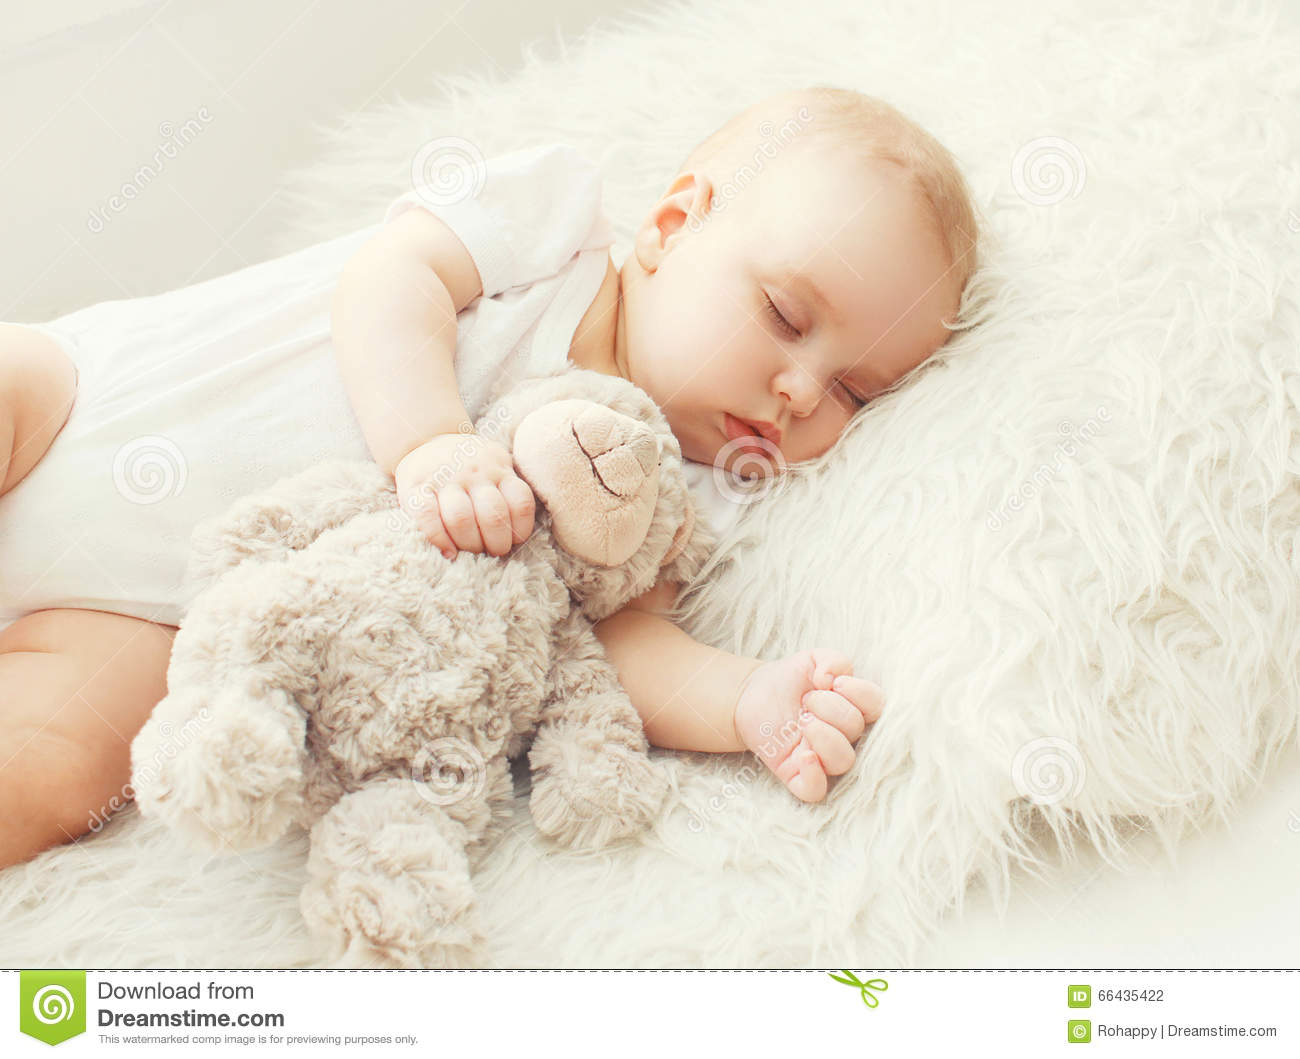 cute baby sleeping on soft bed home stock photo - image of months